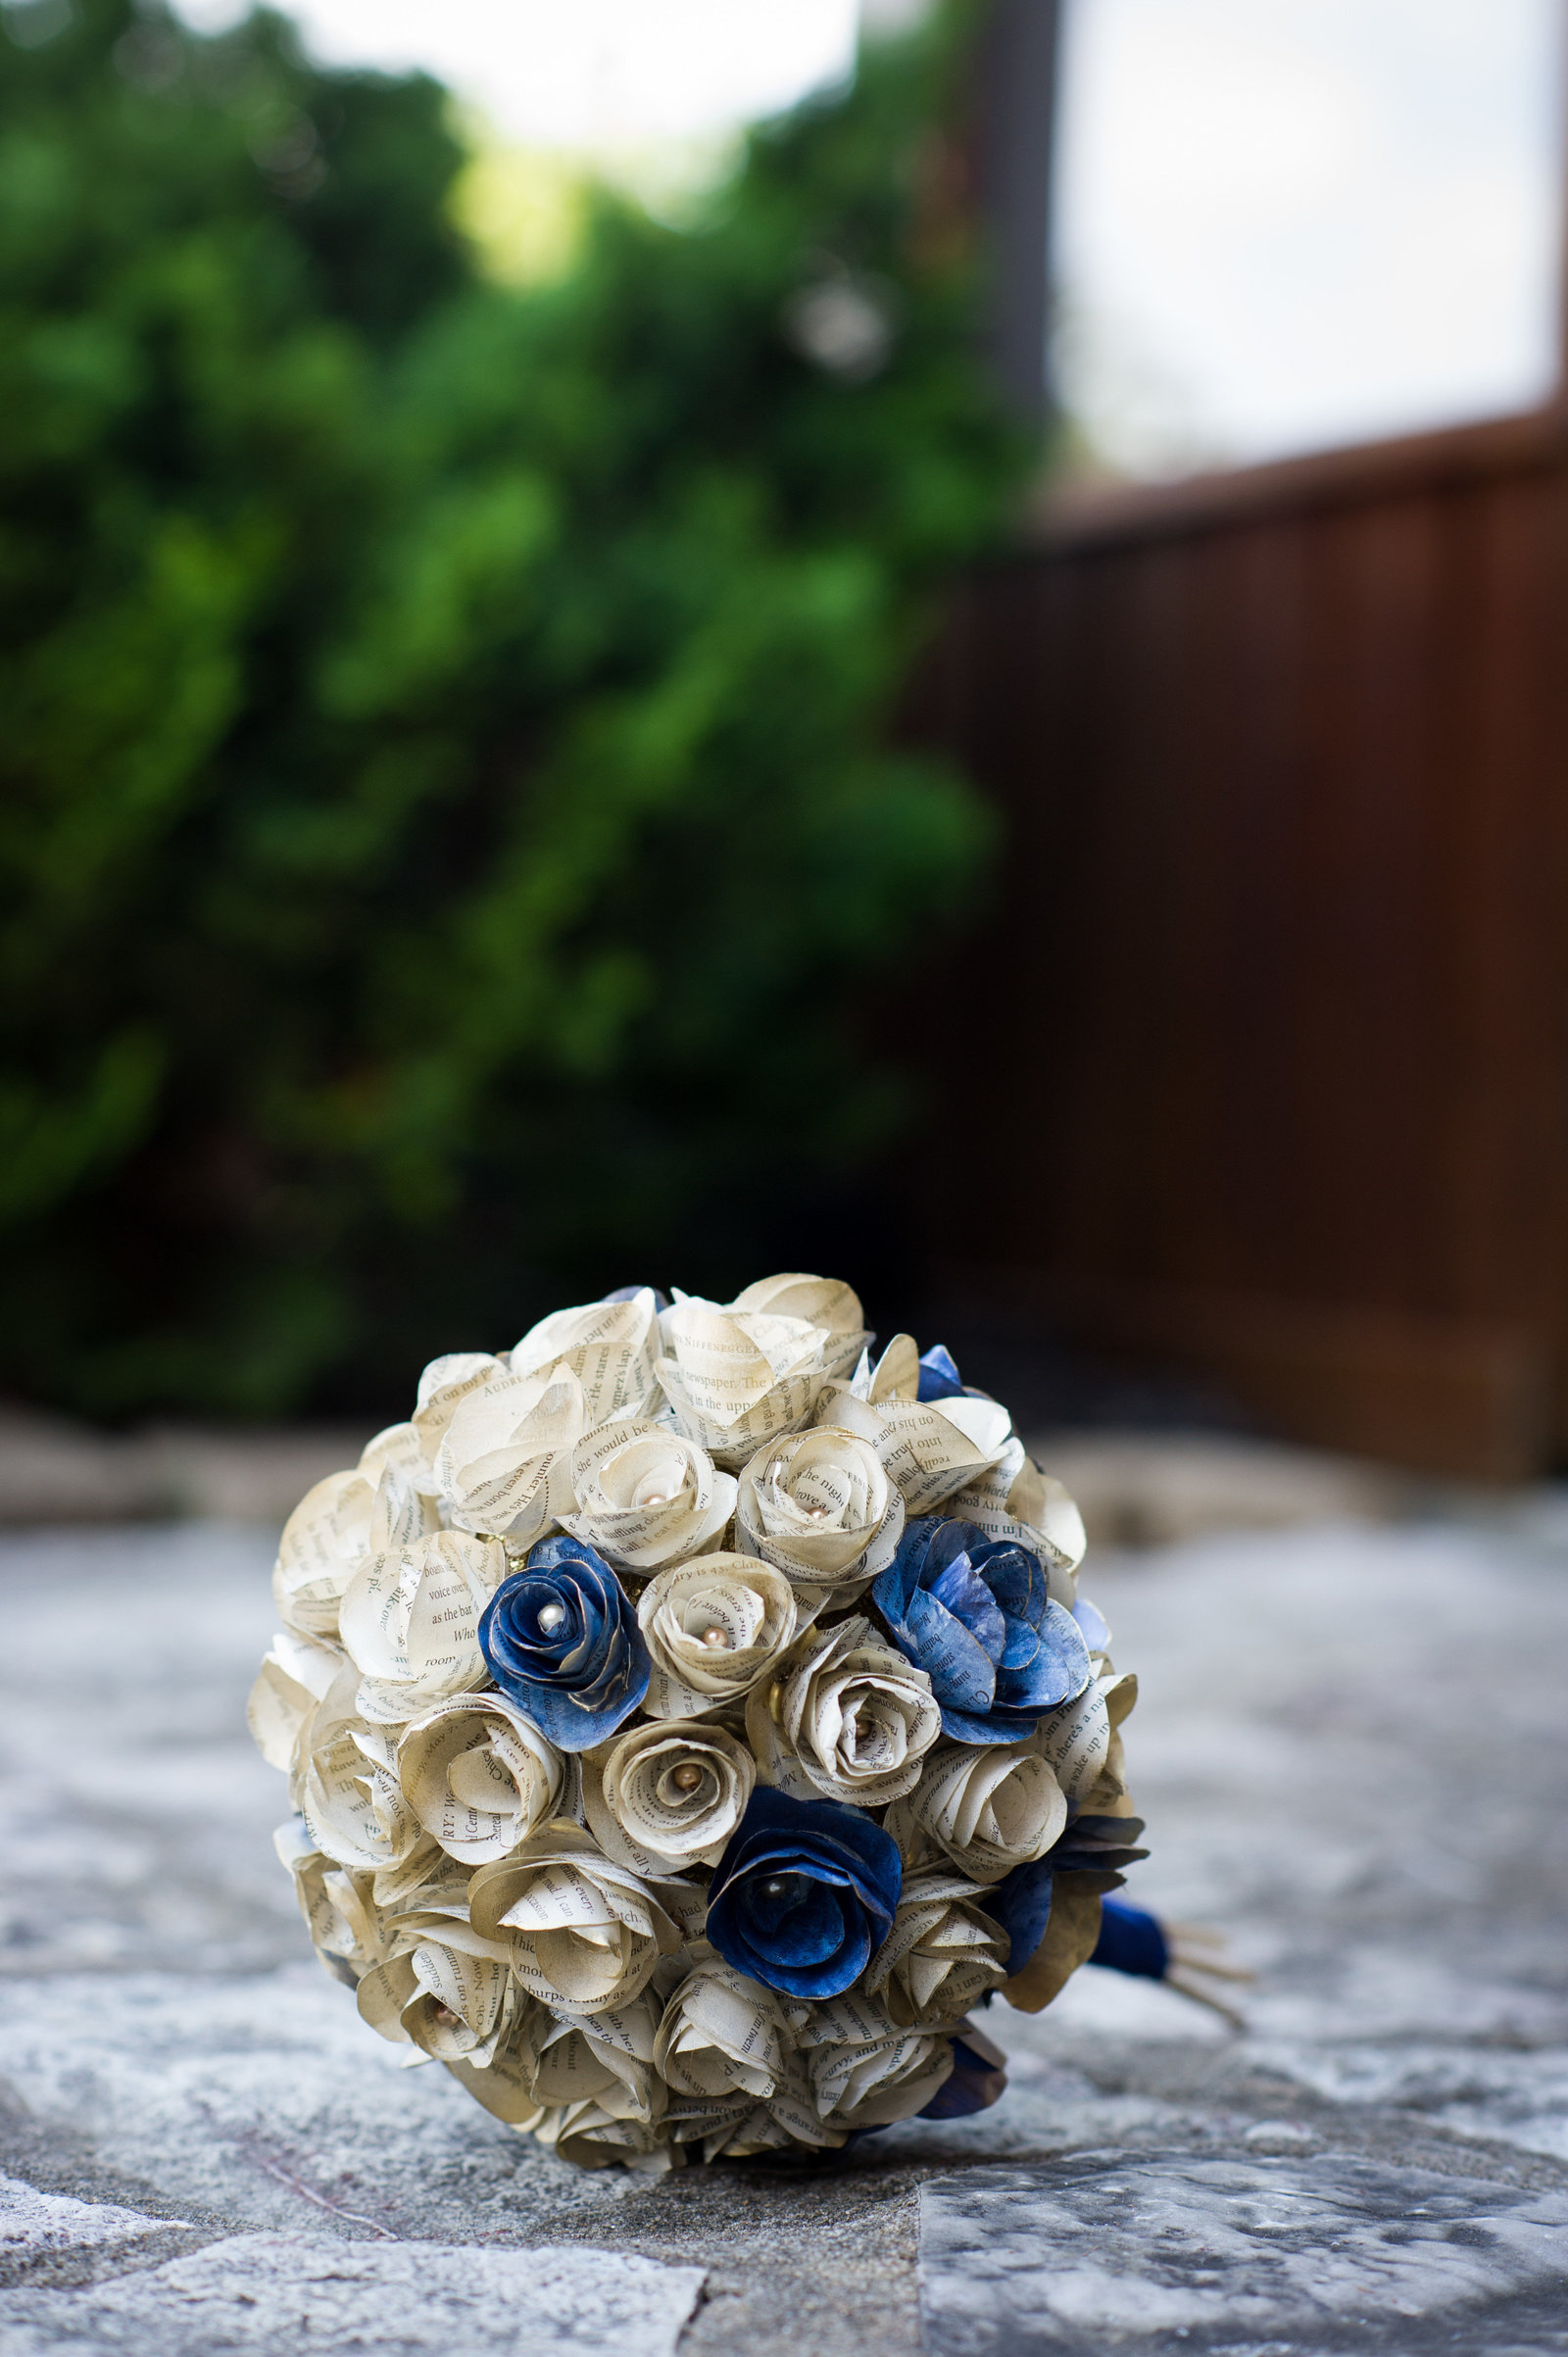 Paper wedding bouquet for Hocking Hills Ohio wedding.